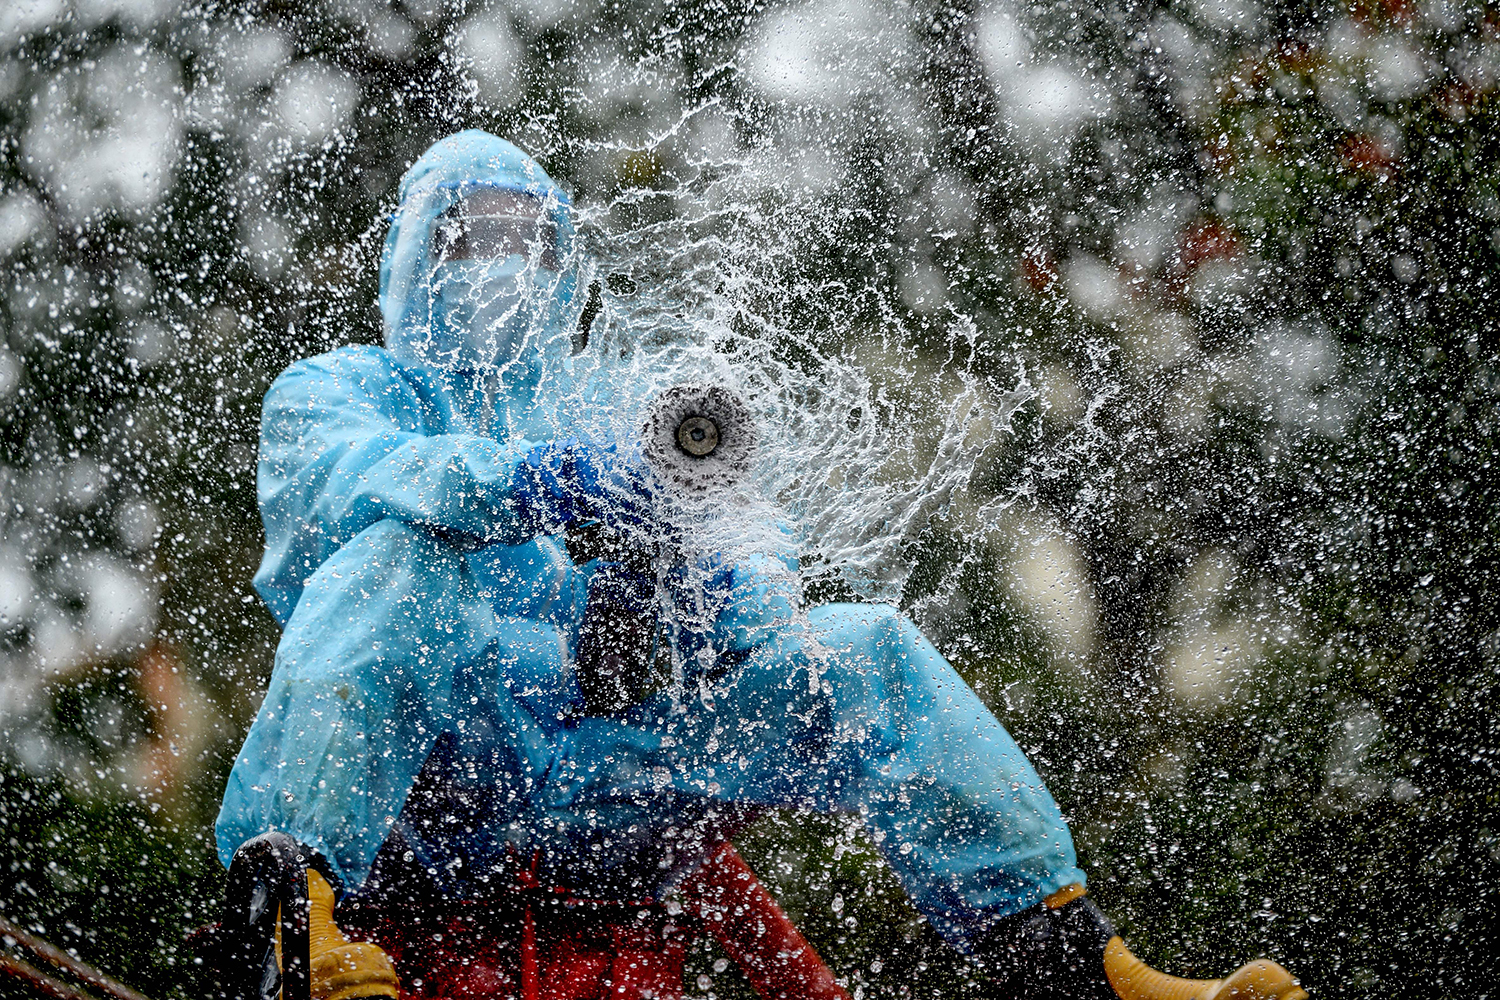 A firefighter sprays disinfectant in a containment zone in Chennai, India, on June 11. ARUN SANKAR/AFP via Getty Images